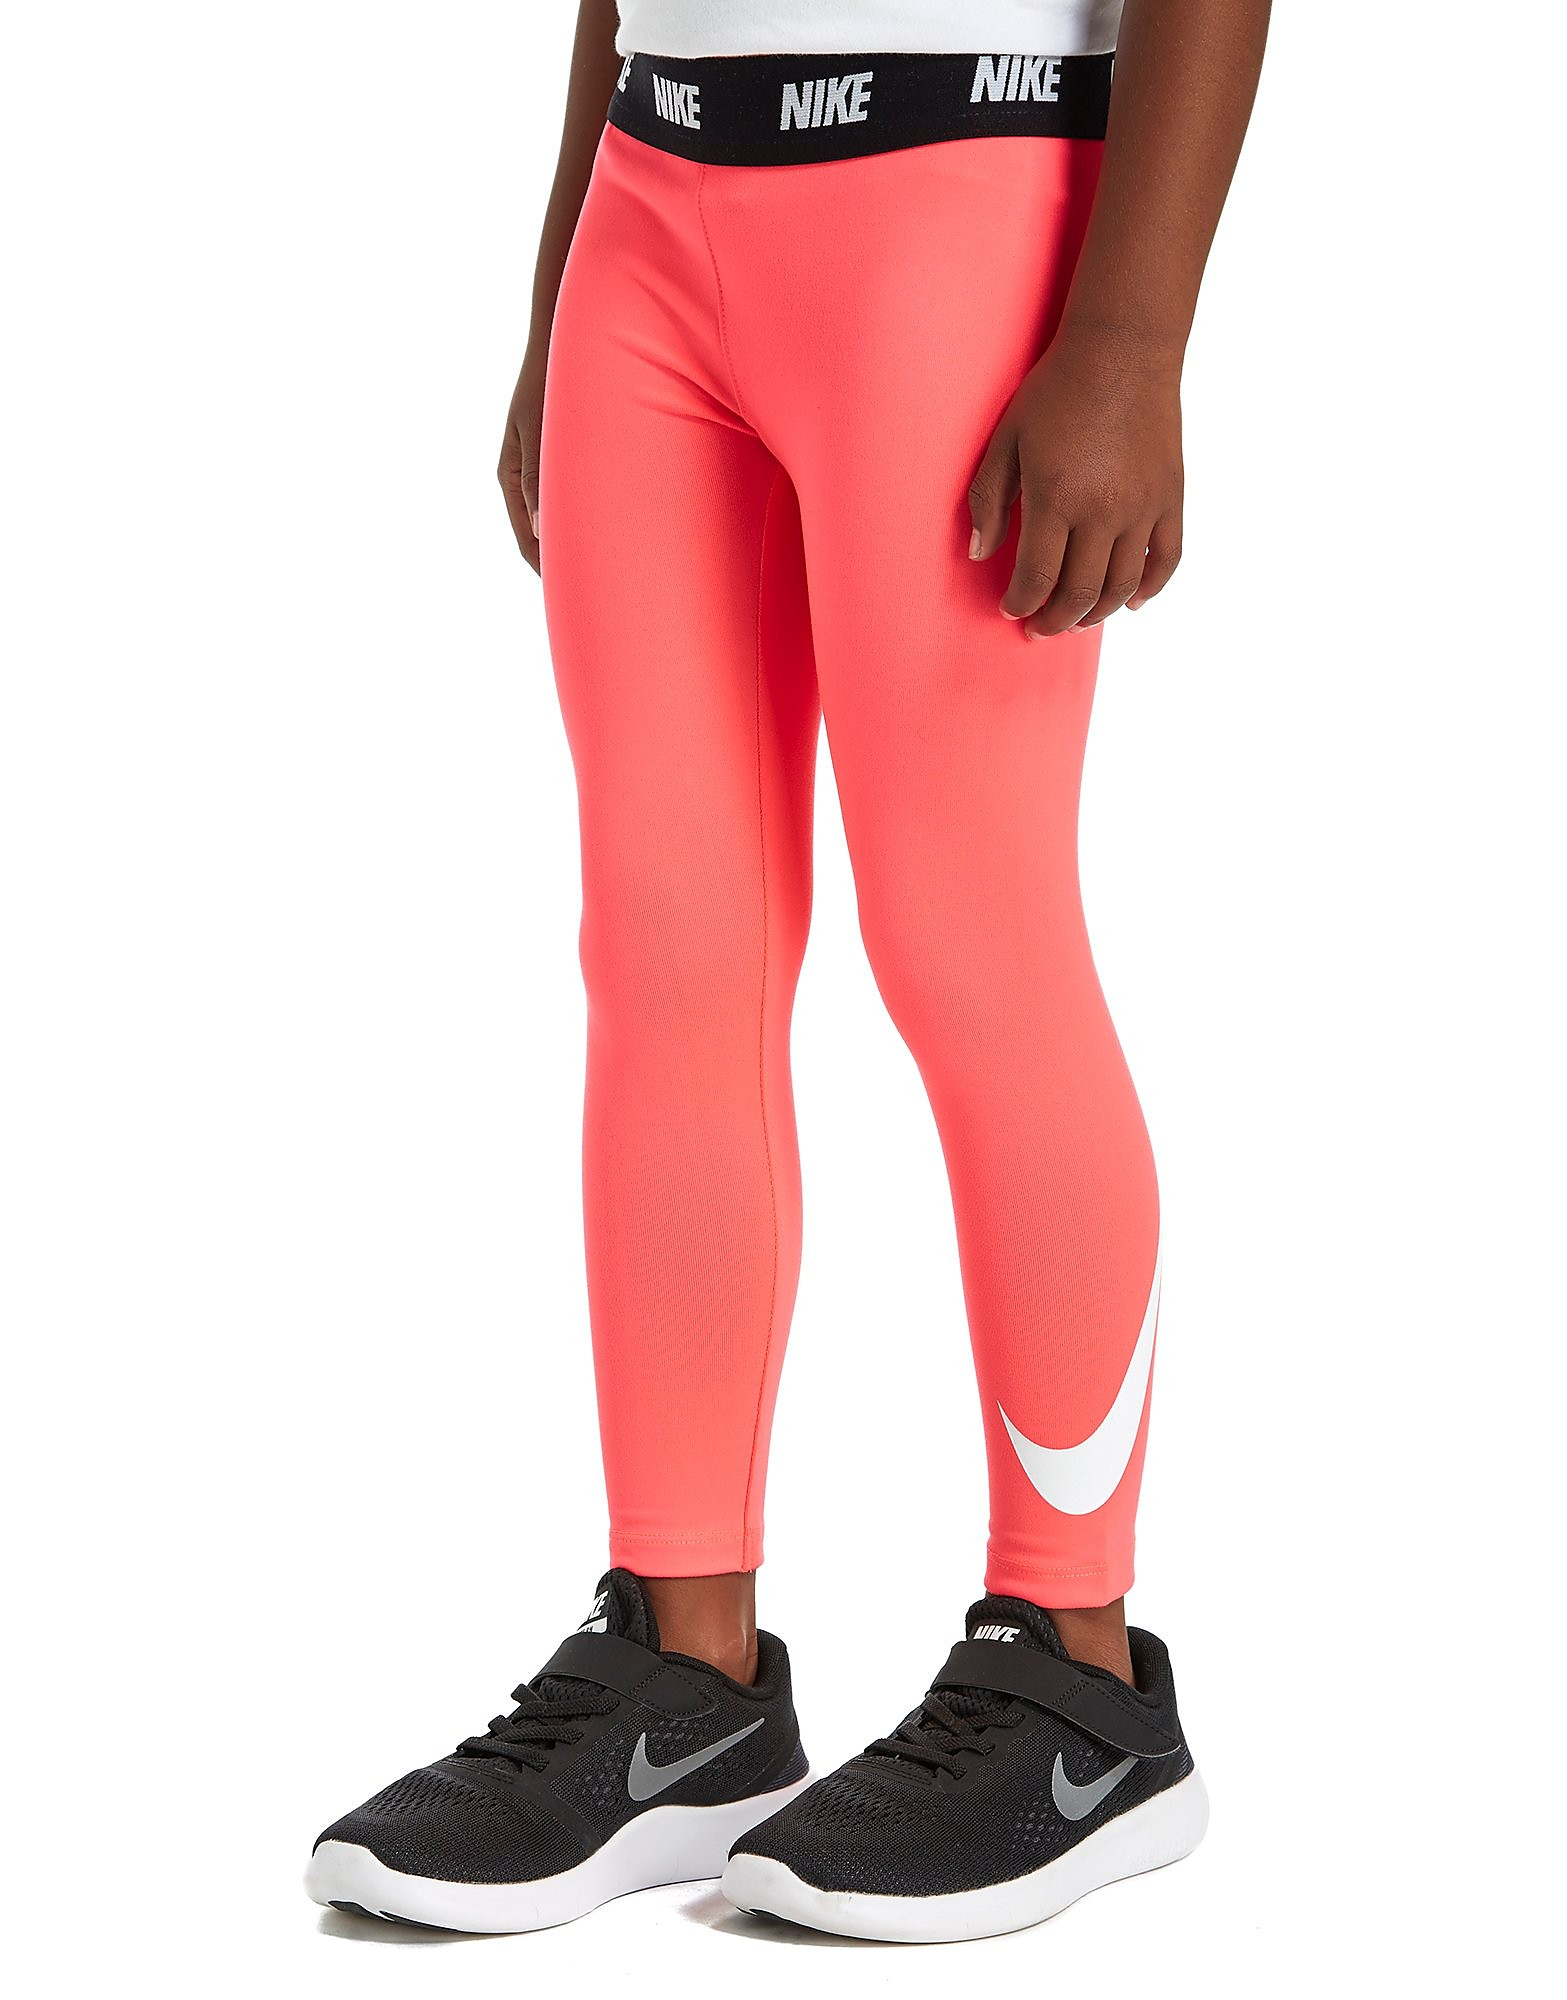 Nike Girls' Swoosh Leggings Children